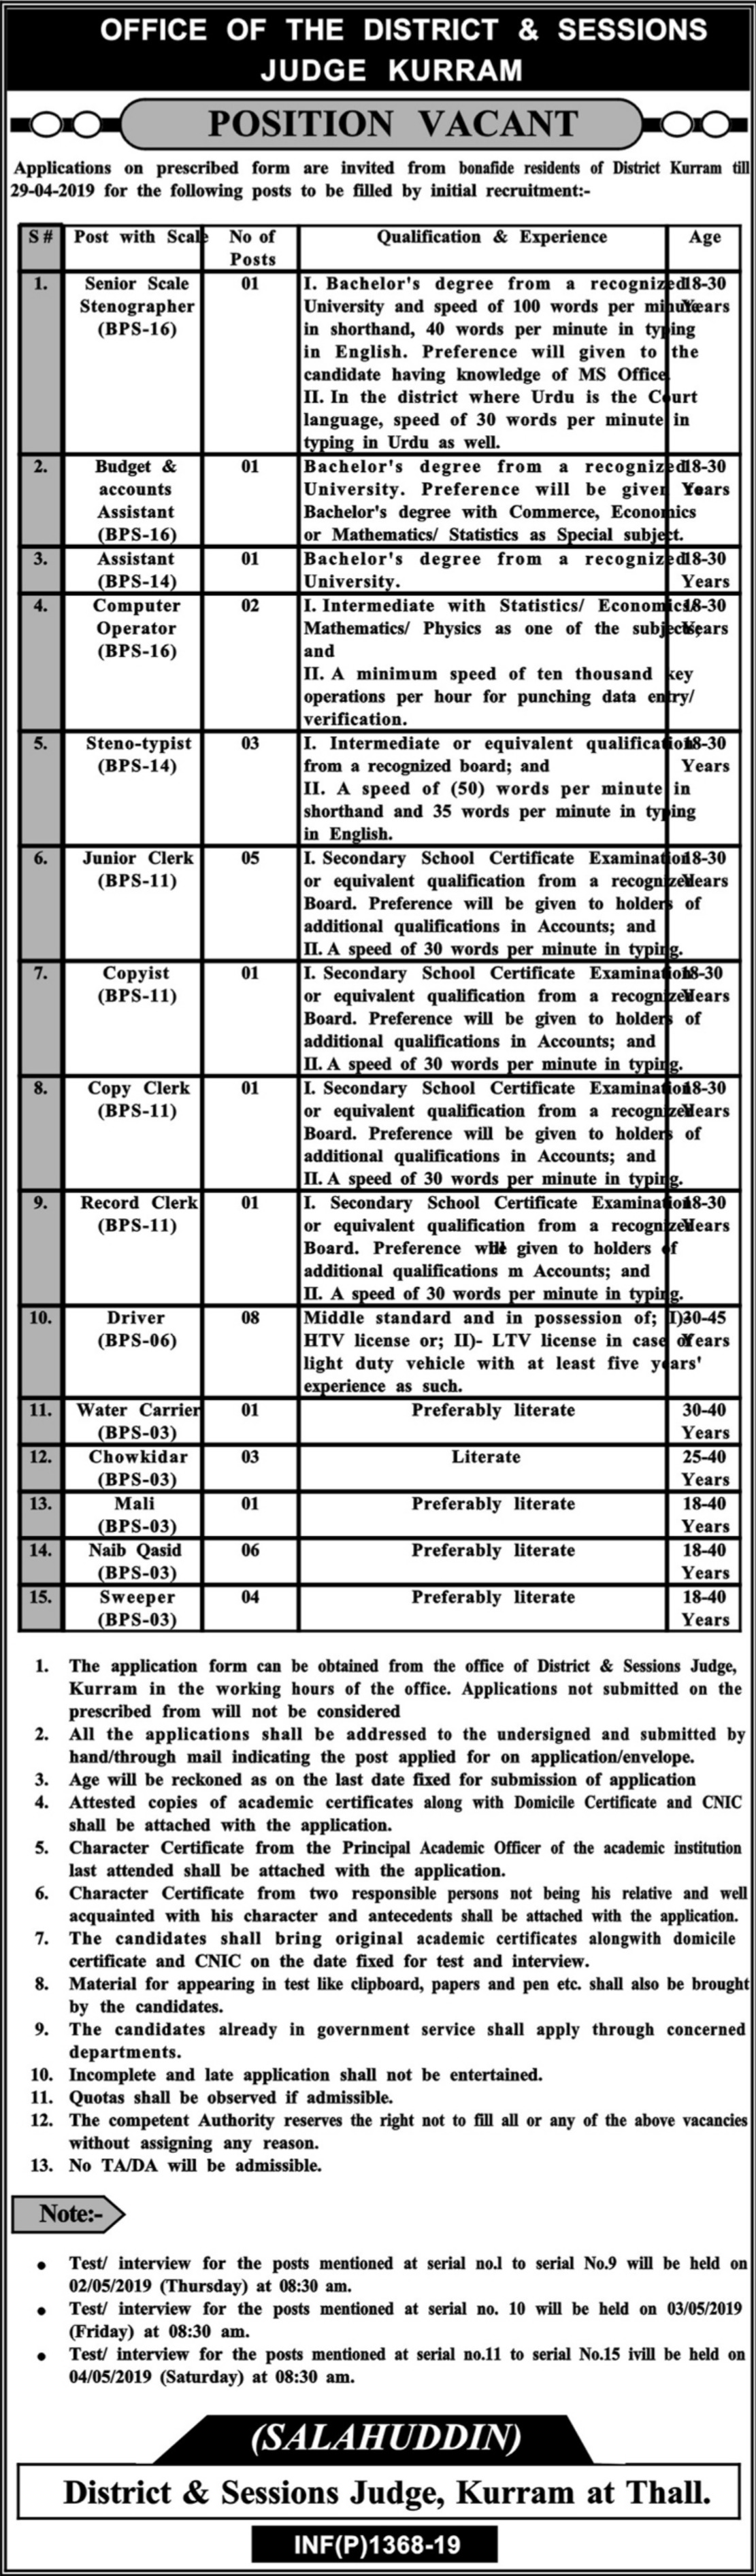 District & Session Court Kurram Jobs 2019 KPK Latest